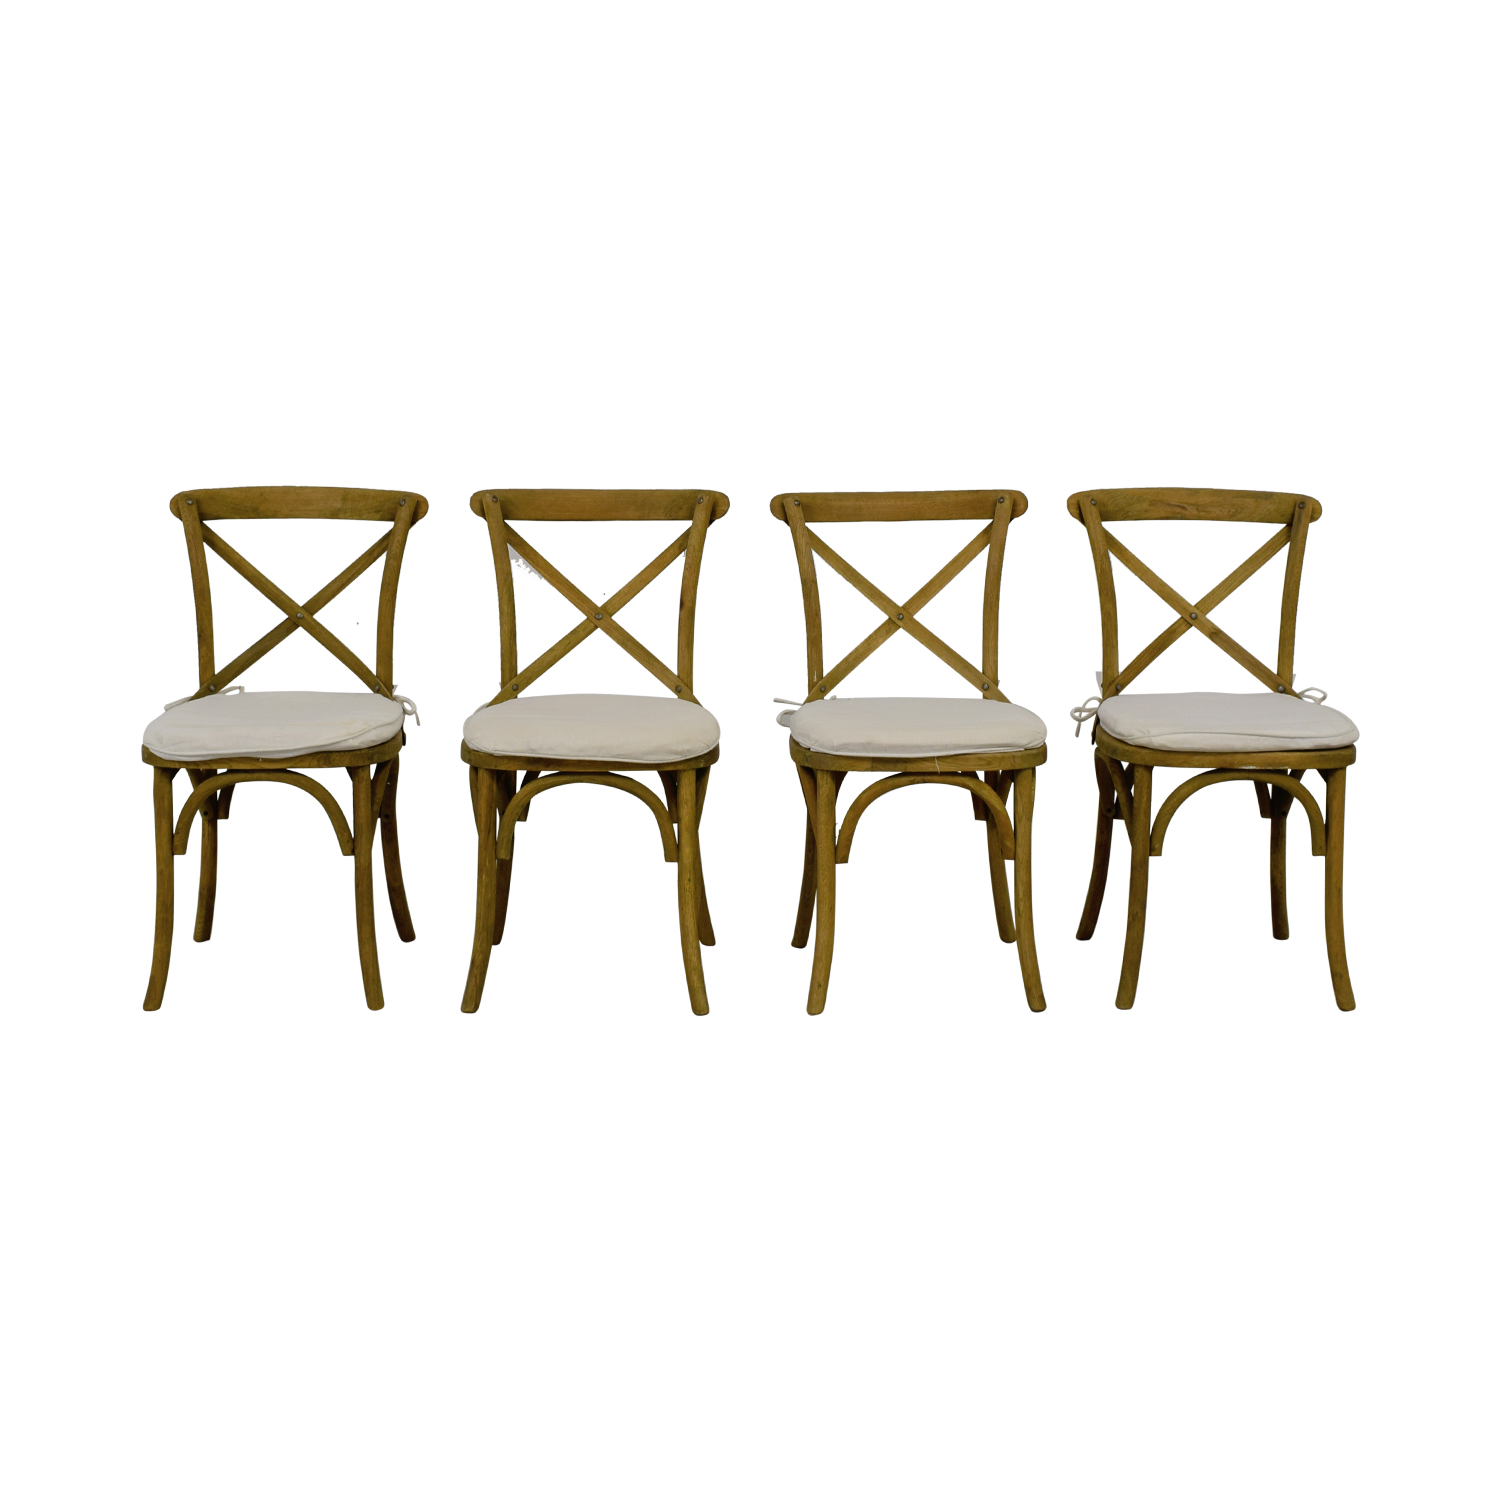 Restoration Hardware Dining Chairs 84 Off Restoration Hardware Restoration Hardware Madeleine Chairs With Cushion Chairs